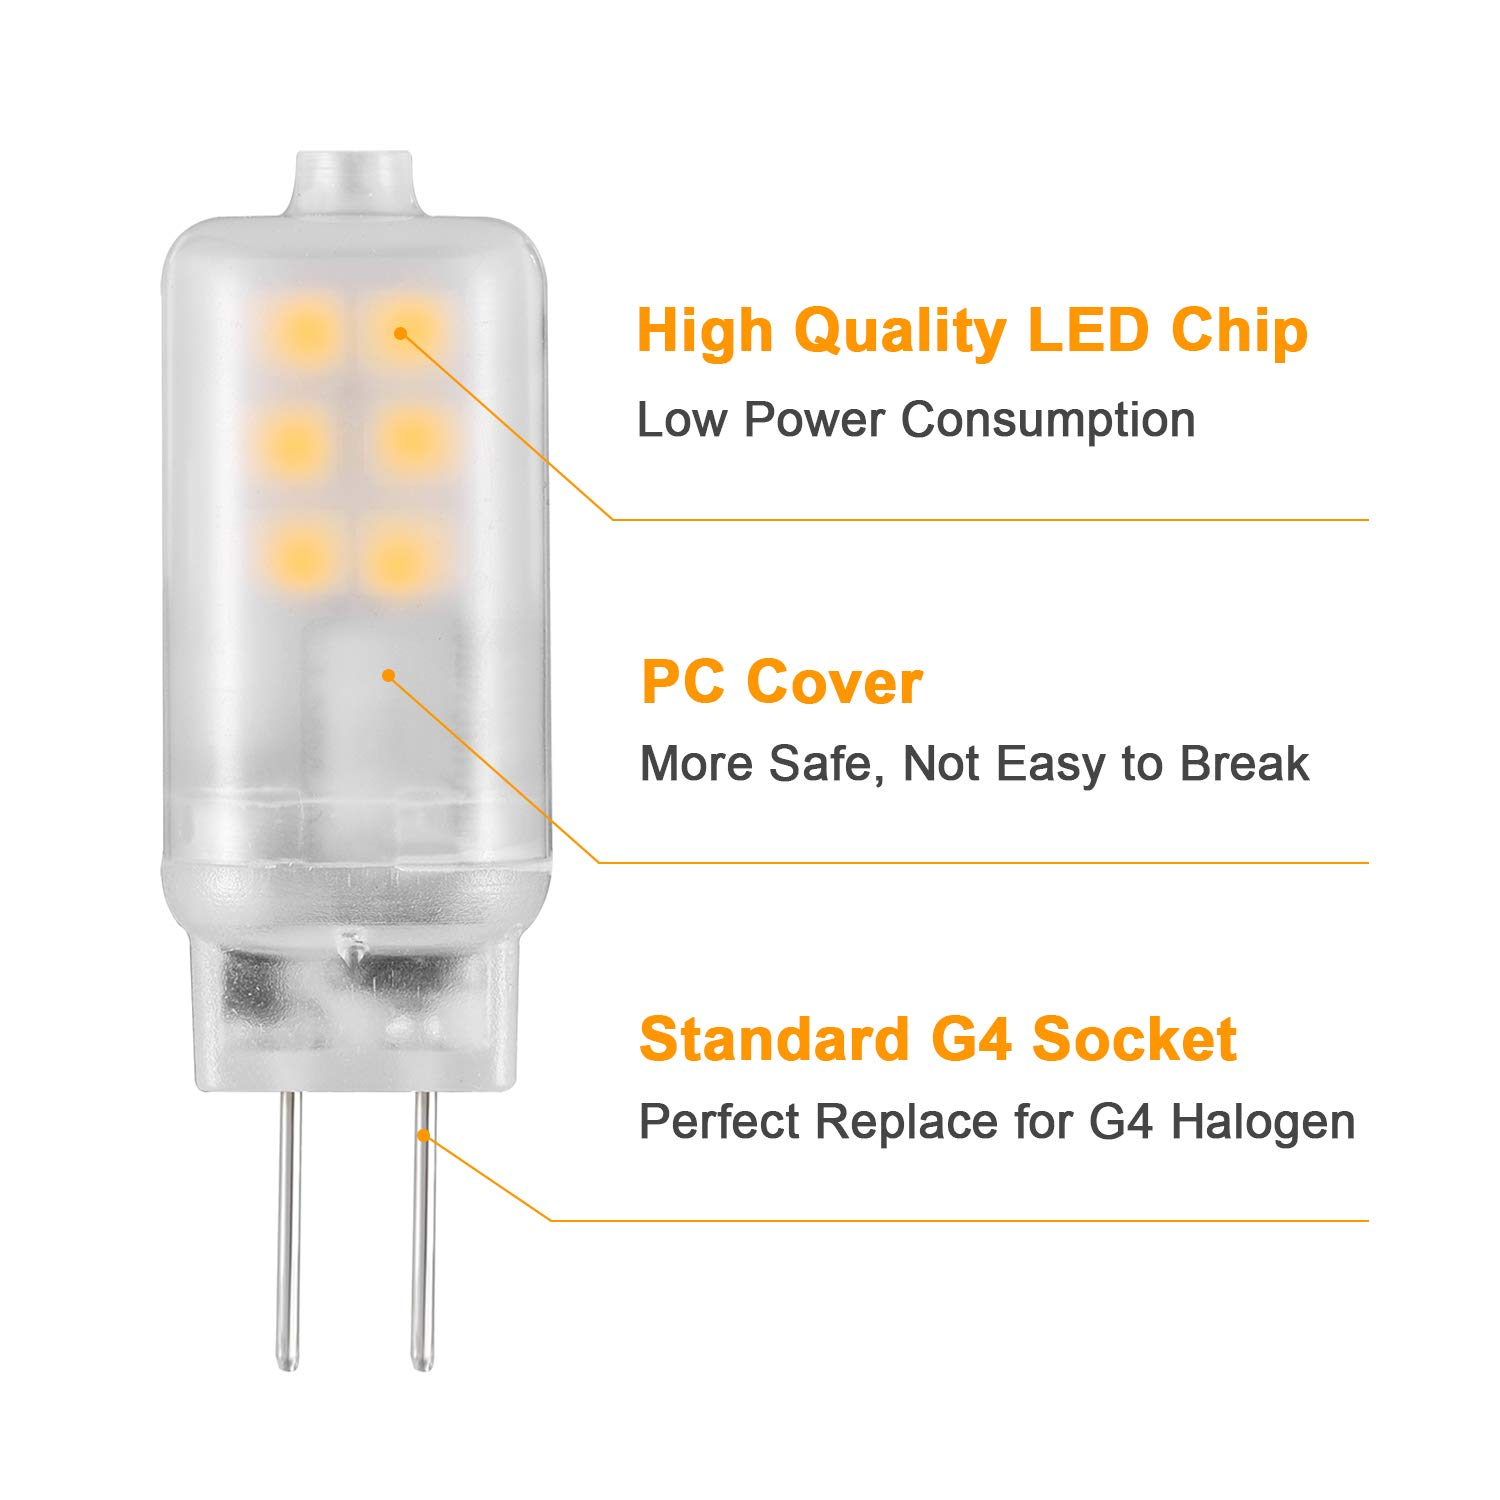 Not Dimmable Warm White 3000K Bulb 10er Pack 360/° Beam Angle No Flicker 280LM AC 220-240V Eco.Luma G9 LED Bulbs 3W Equivalent 25W 28W 30W Halogen Lamp